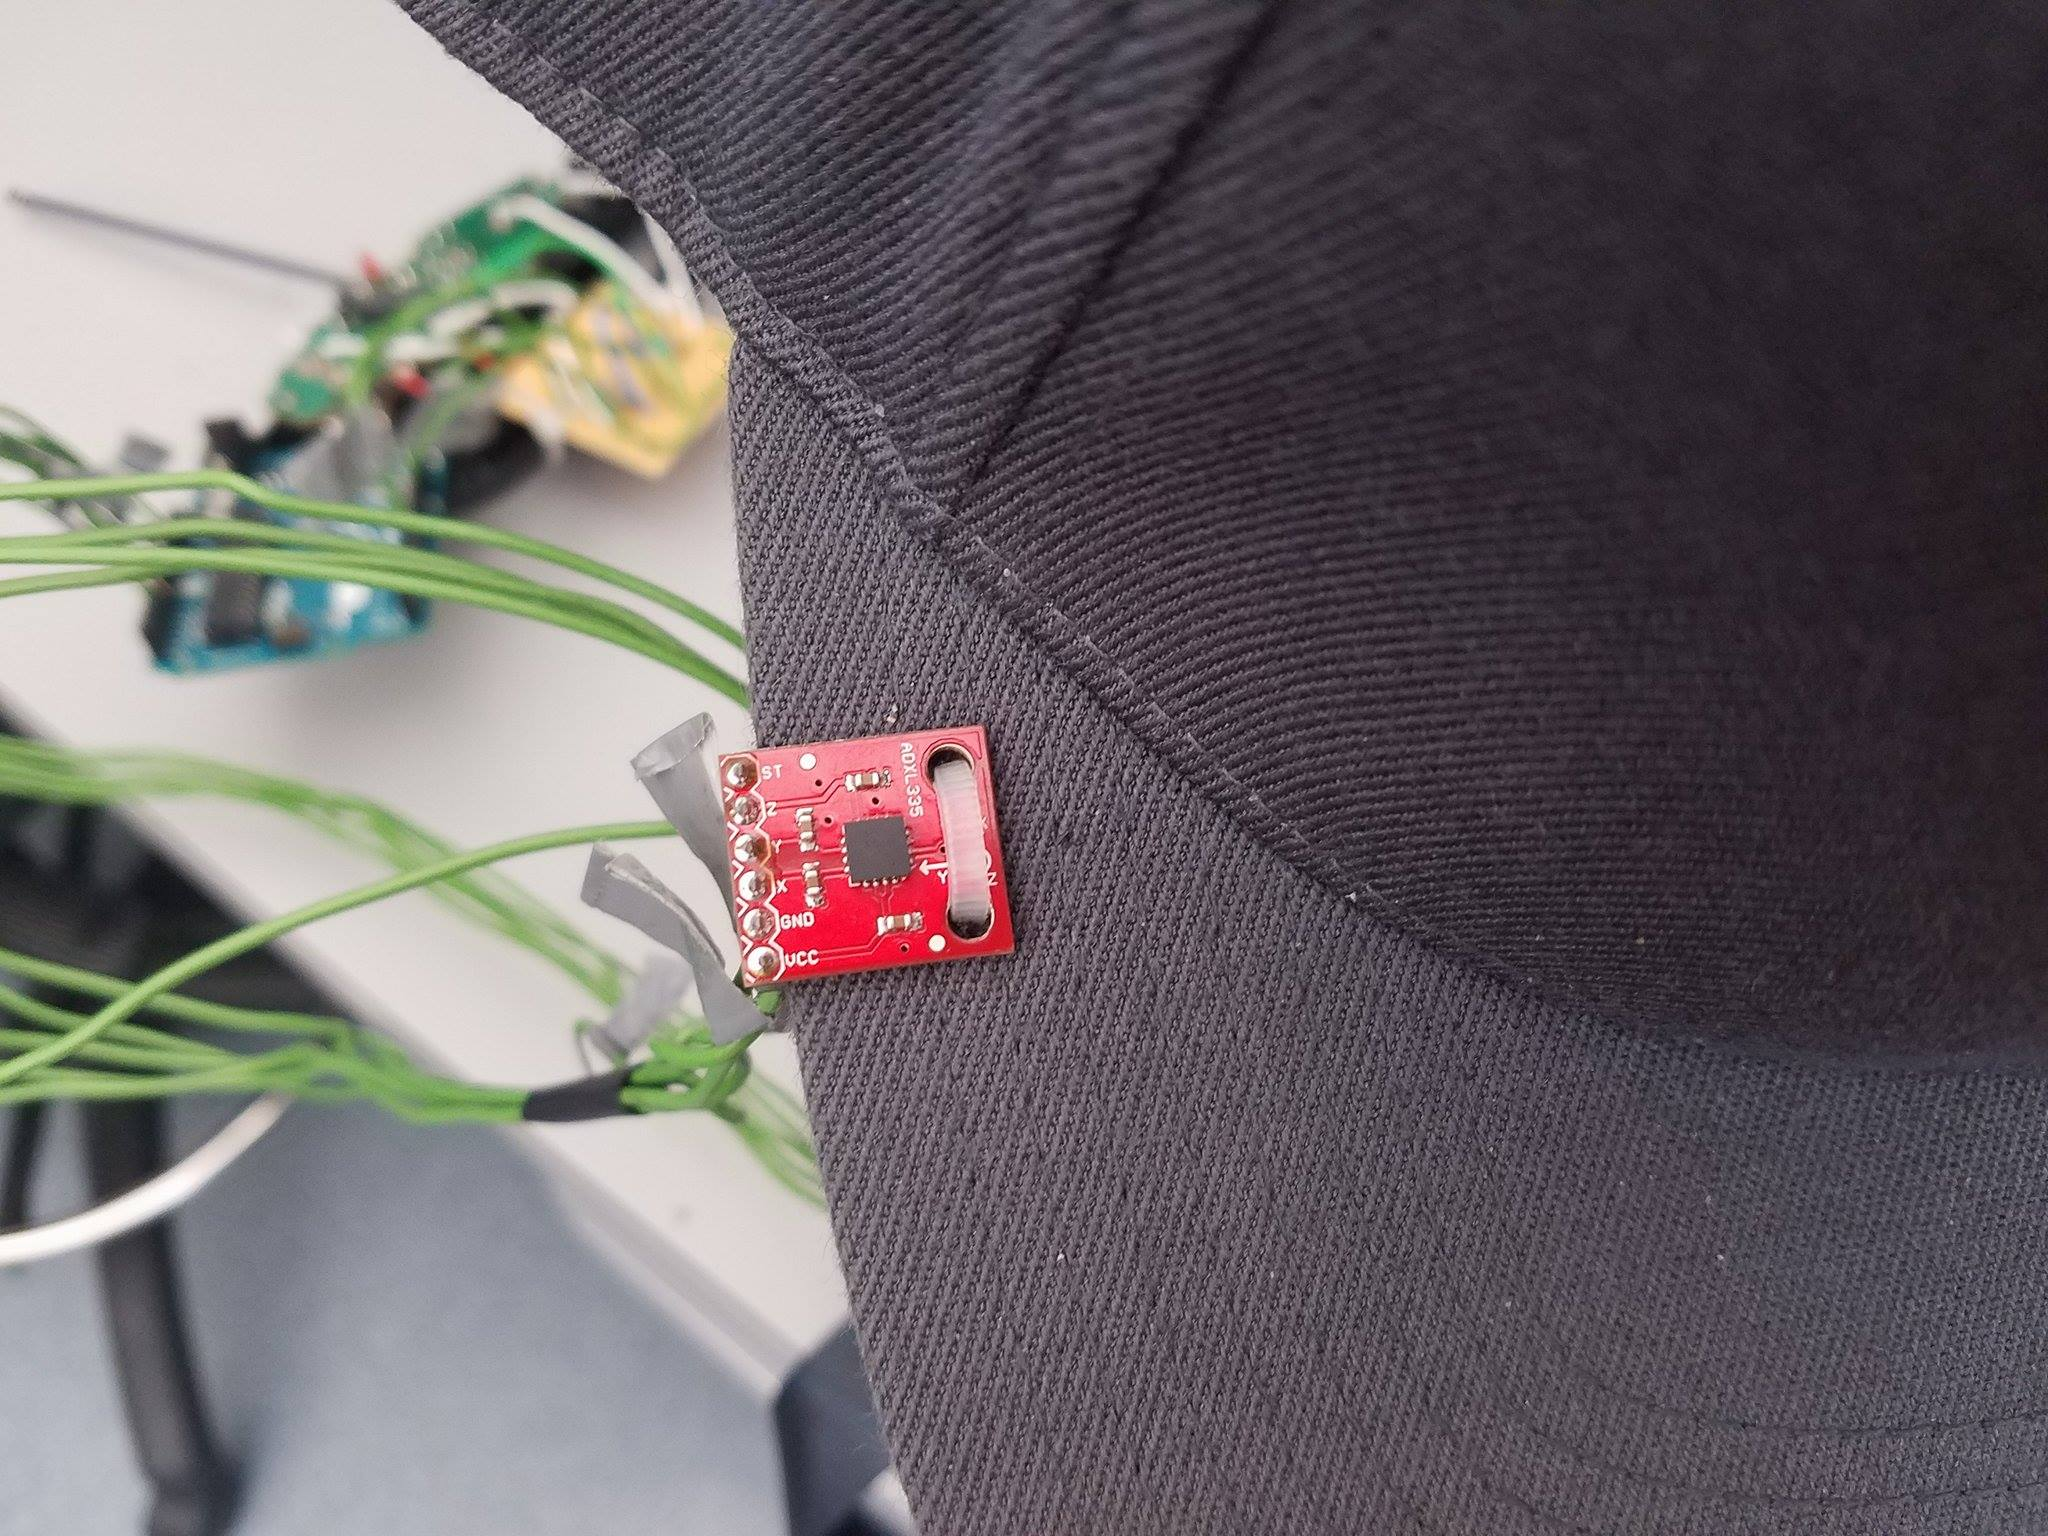 Picture of Attach Accelerometer to Hat